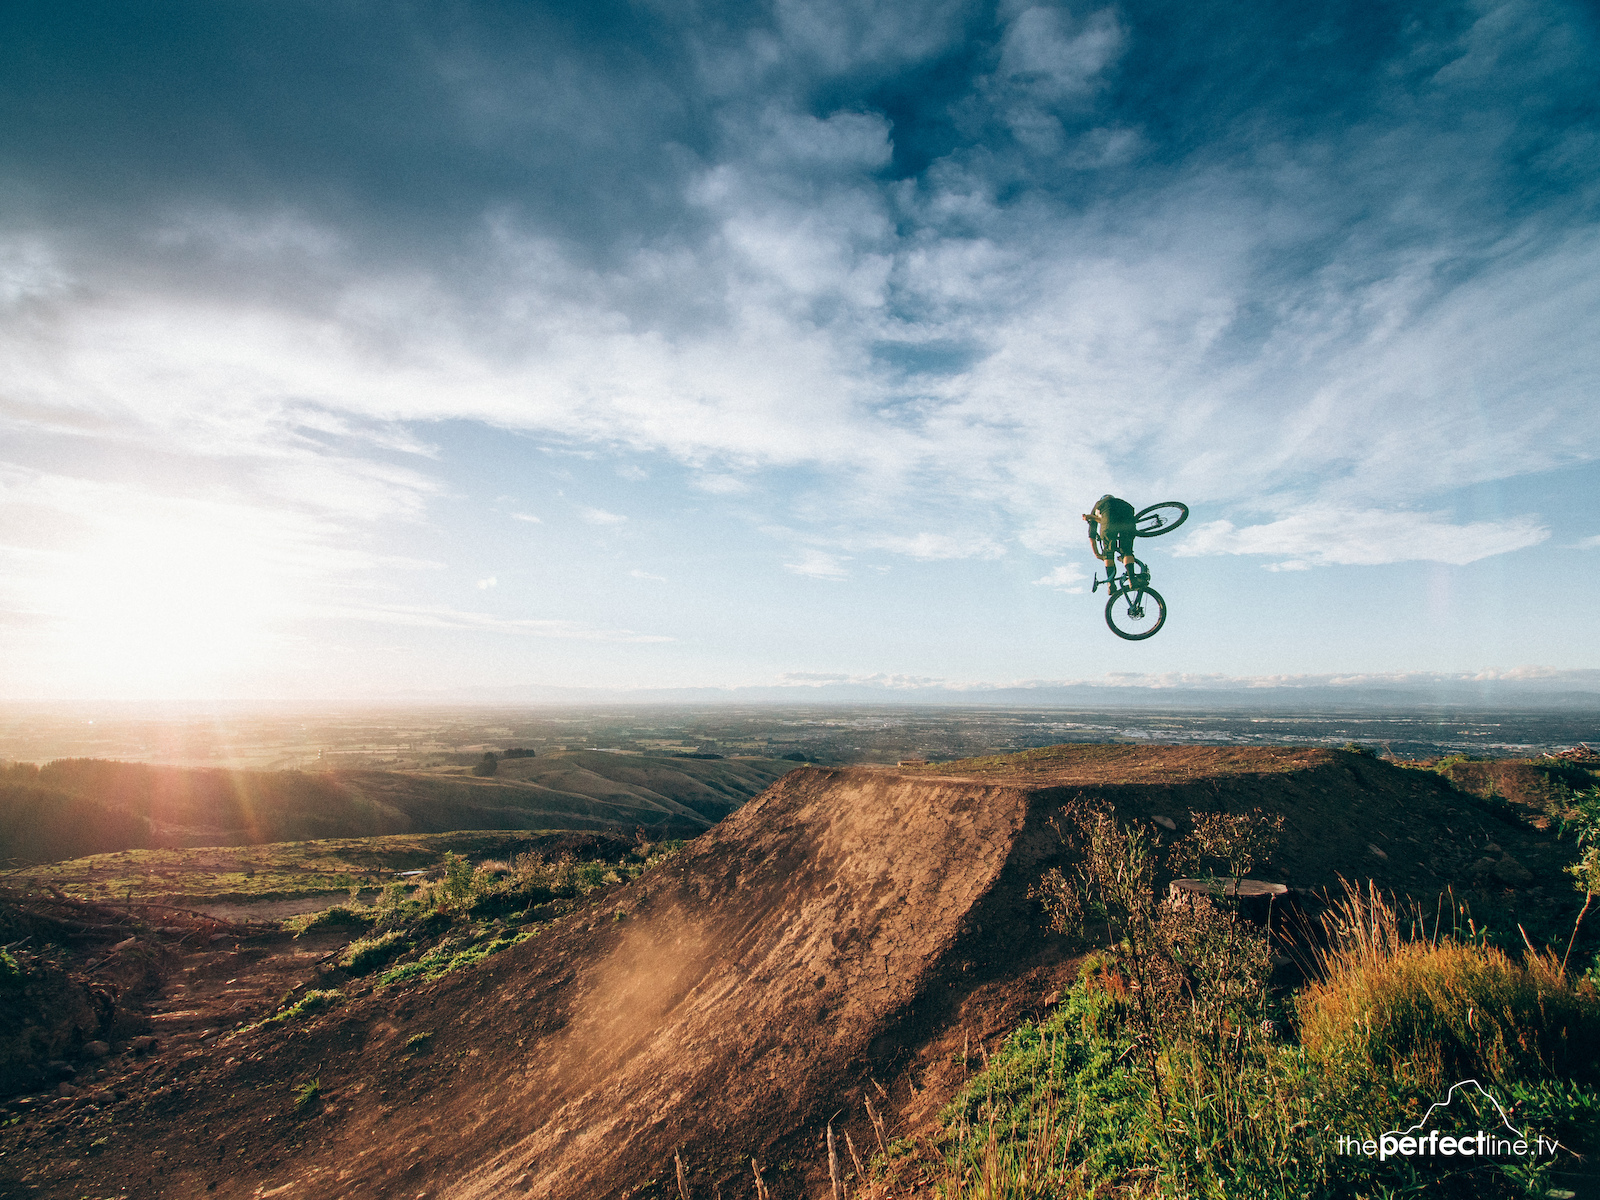 Tyler Brooker clocking up the steeze miles on Airtearoa airlines at Christchurch Adventure Park - New Zealand